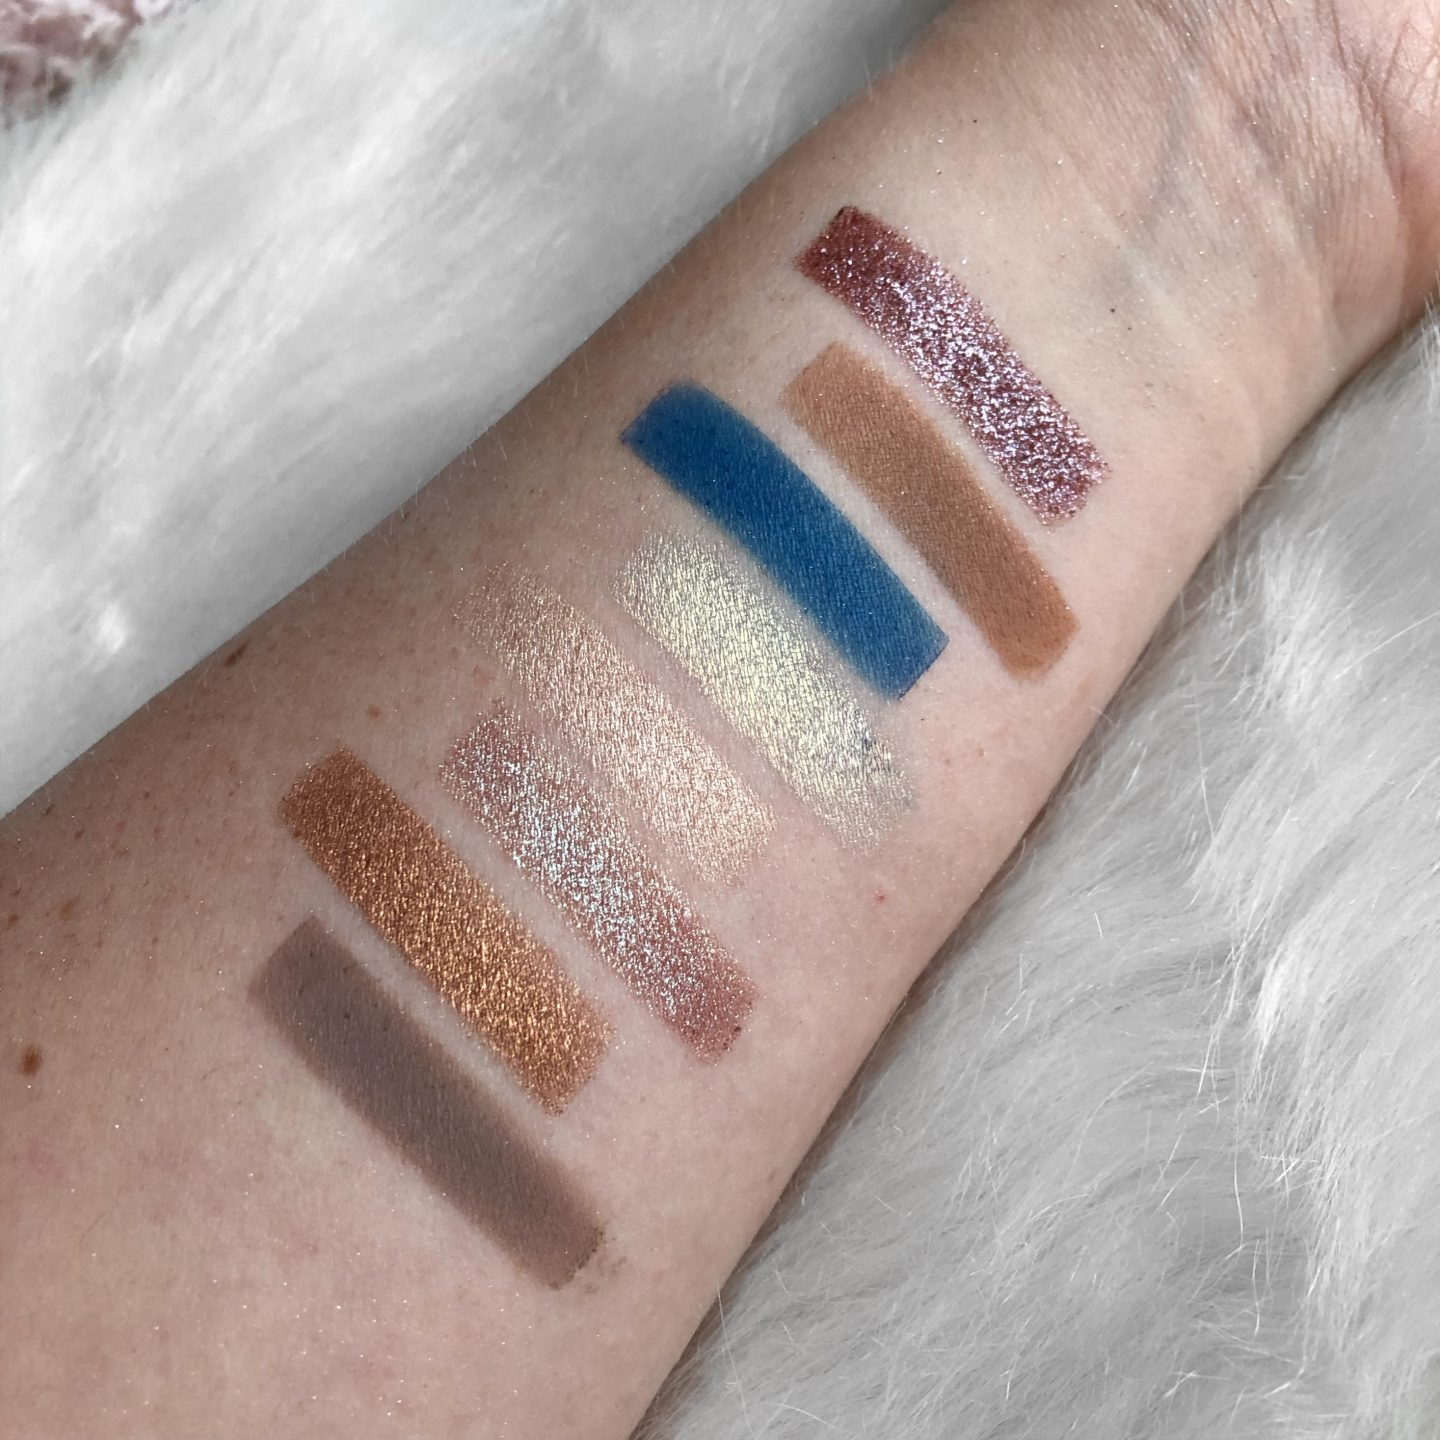 colourpop custom palette rows 3 and 4 swatches